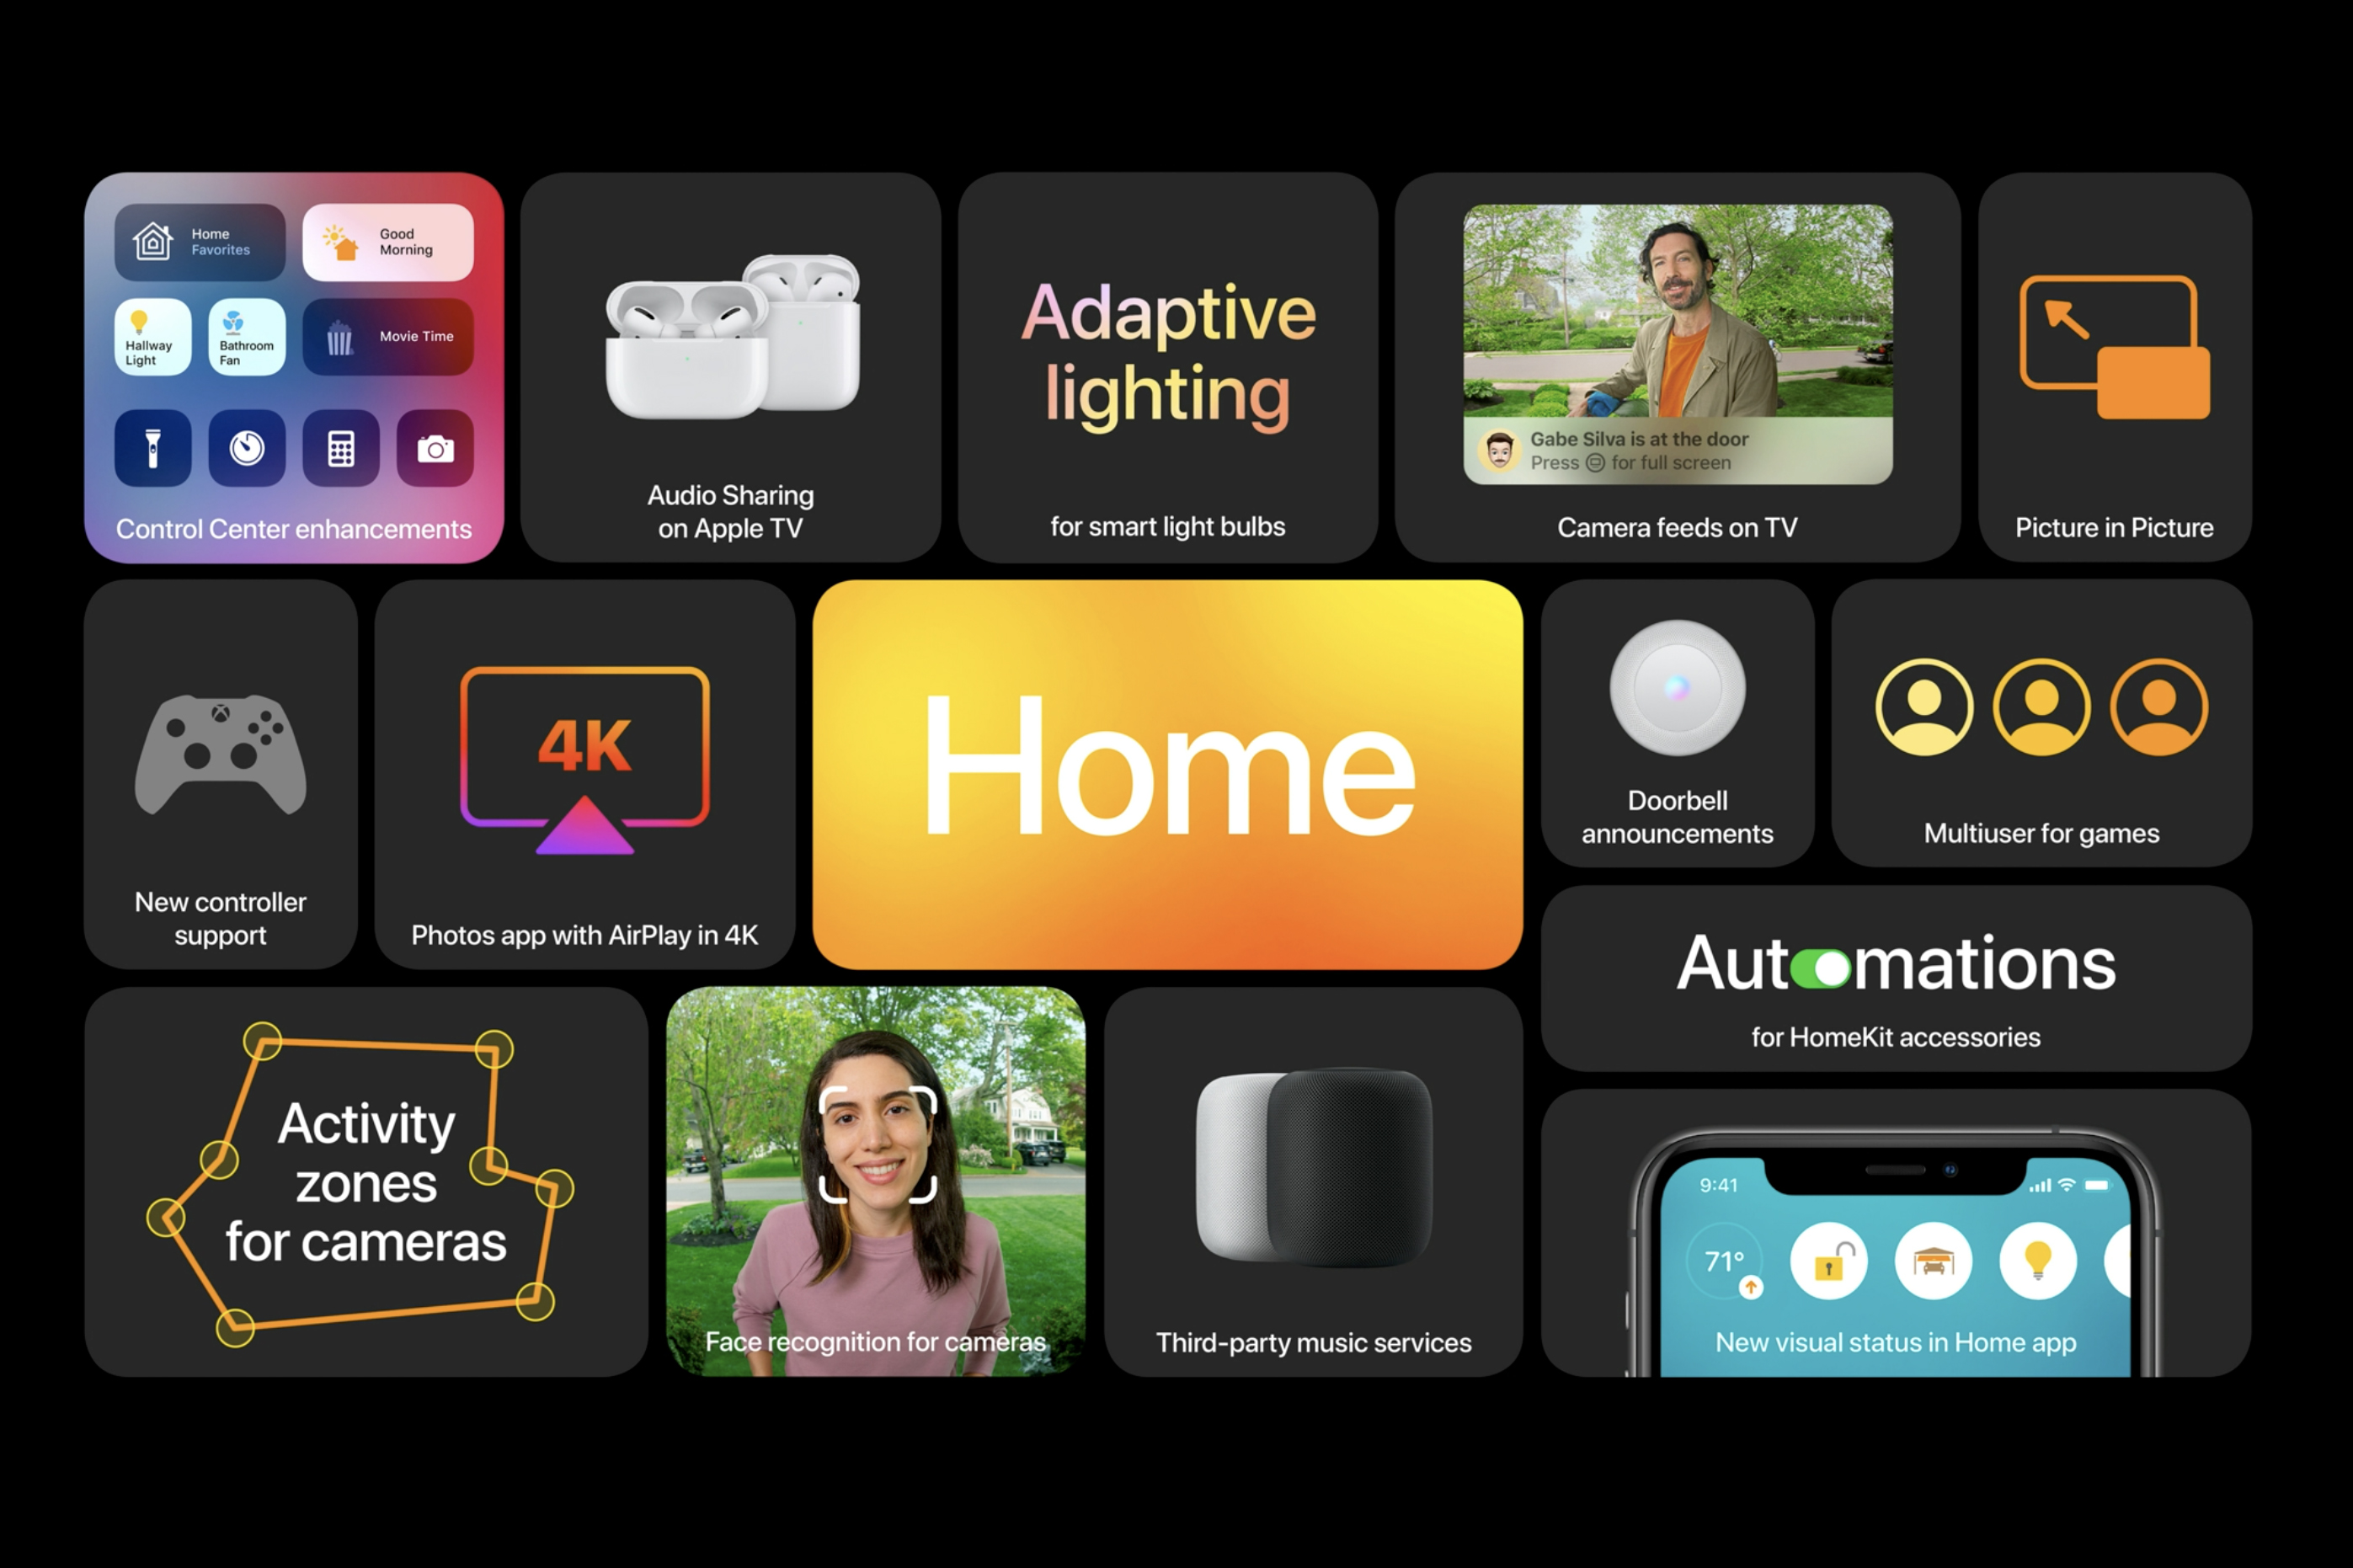 Apple Wwdc Airpods Sharing Spatial Audio 4k Youtube And More Sound Vision